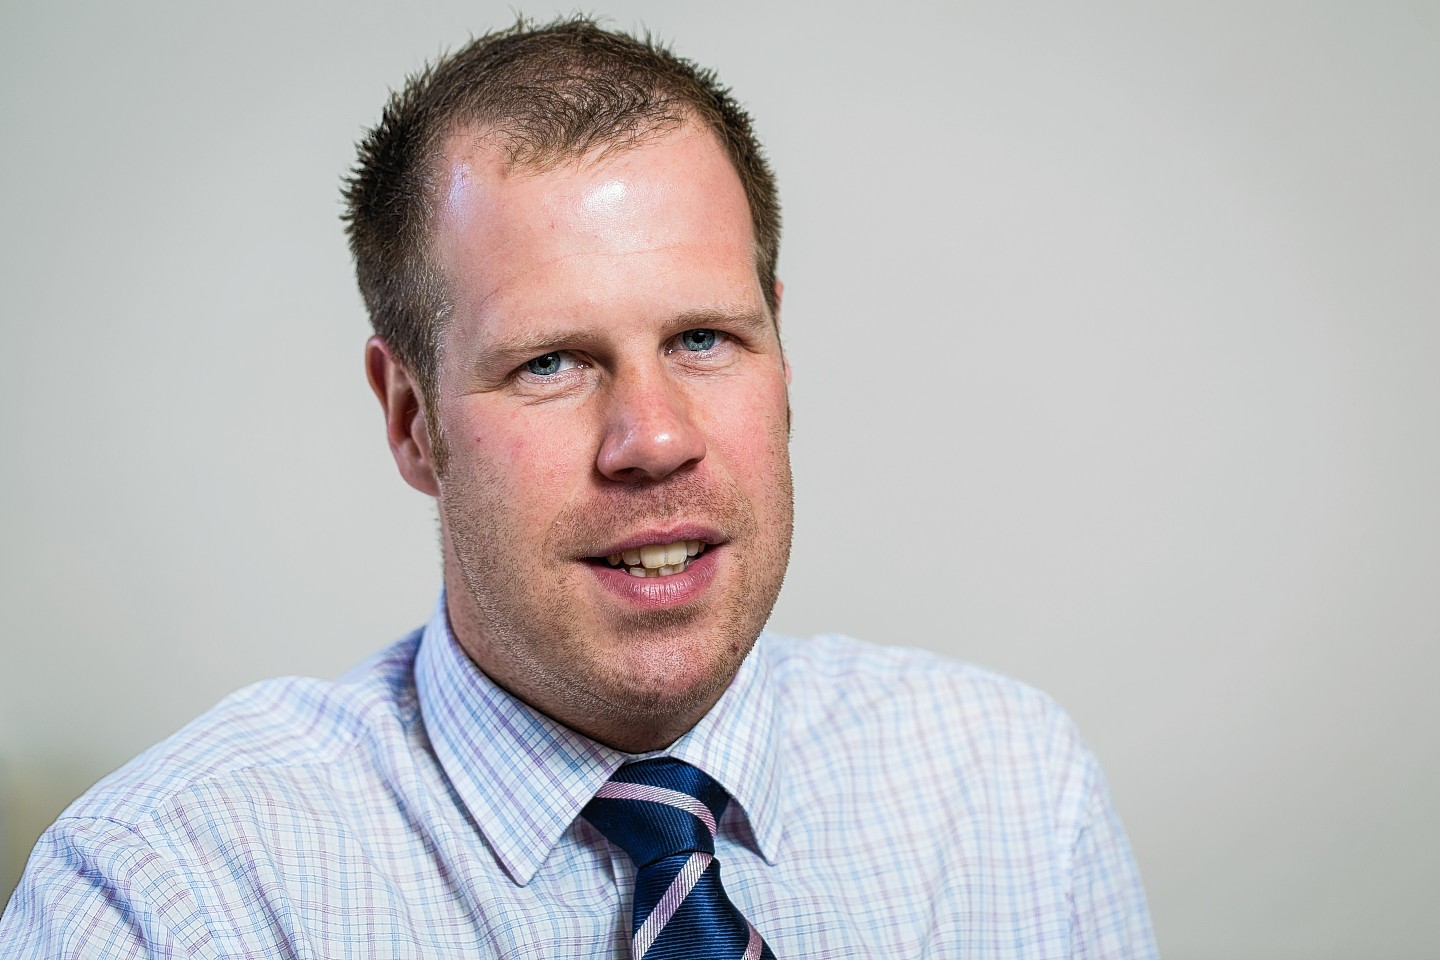 Lloyd Davies, financial adviser at Aberdeen-based financial advice firm Central Investment